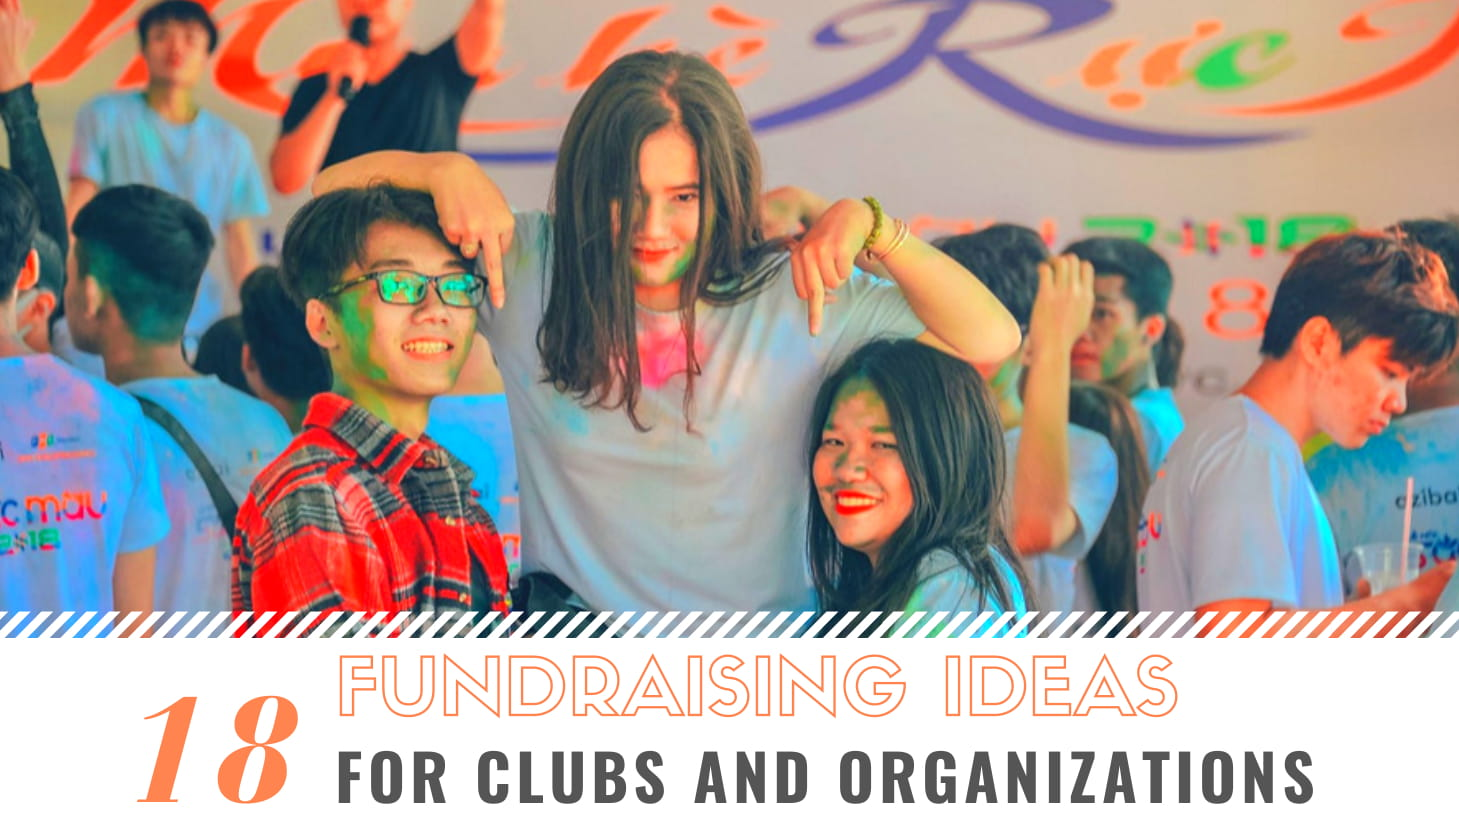 18 fundraising ideas for clubs & organizations - donorbox